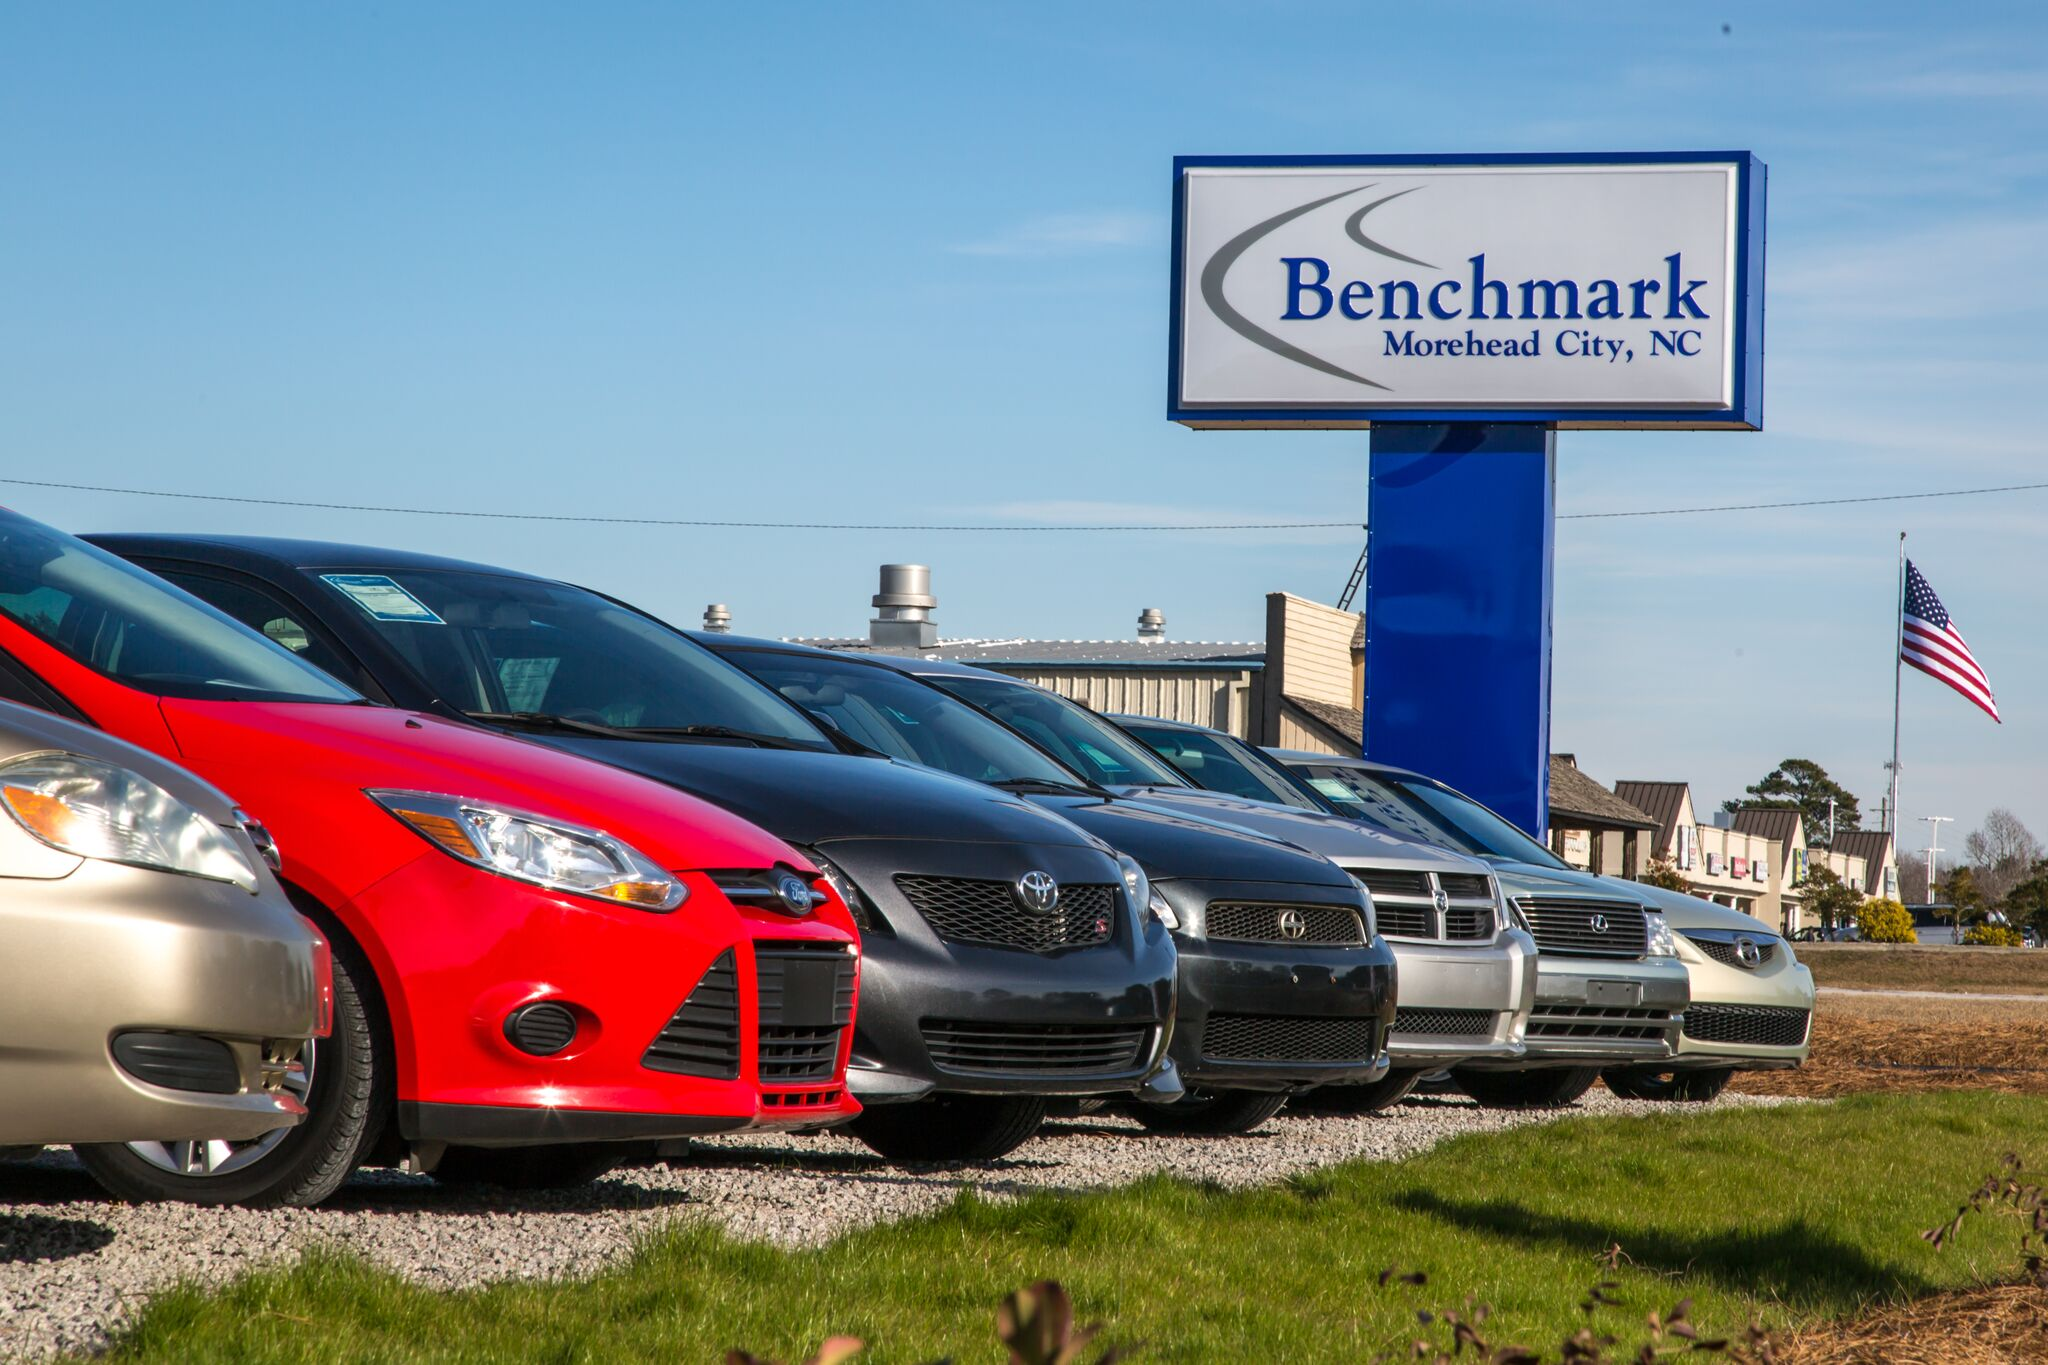 Benchmark Auto Sales Morehead City Reviews, Ratings | Car Dealers near 5394 Hwy. 70 West , Morehead City NC